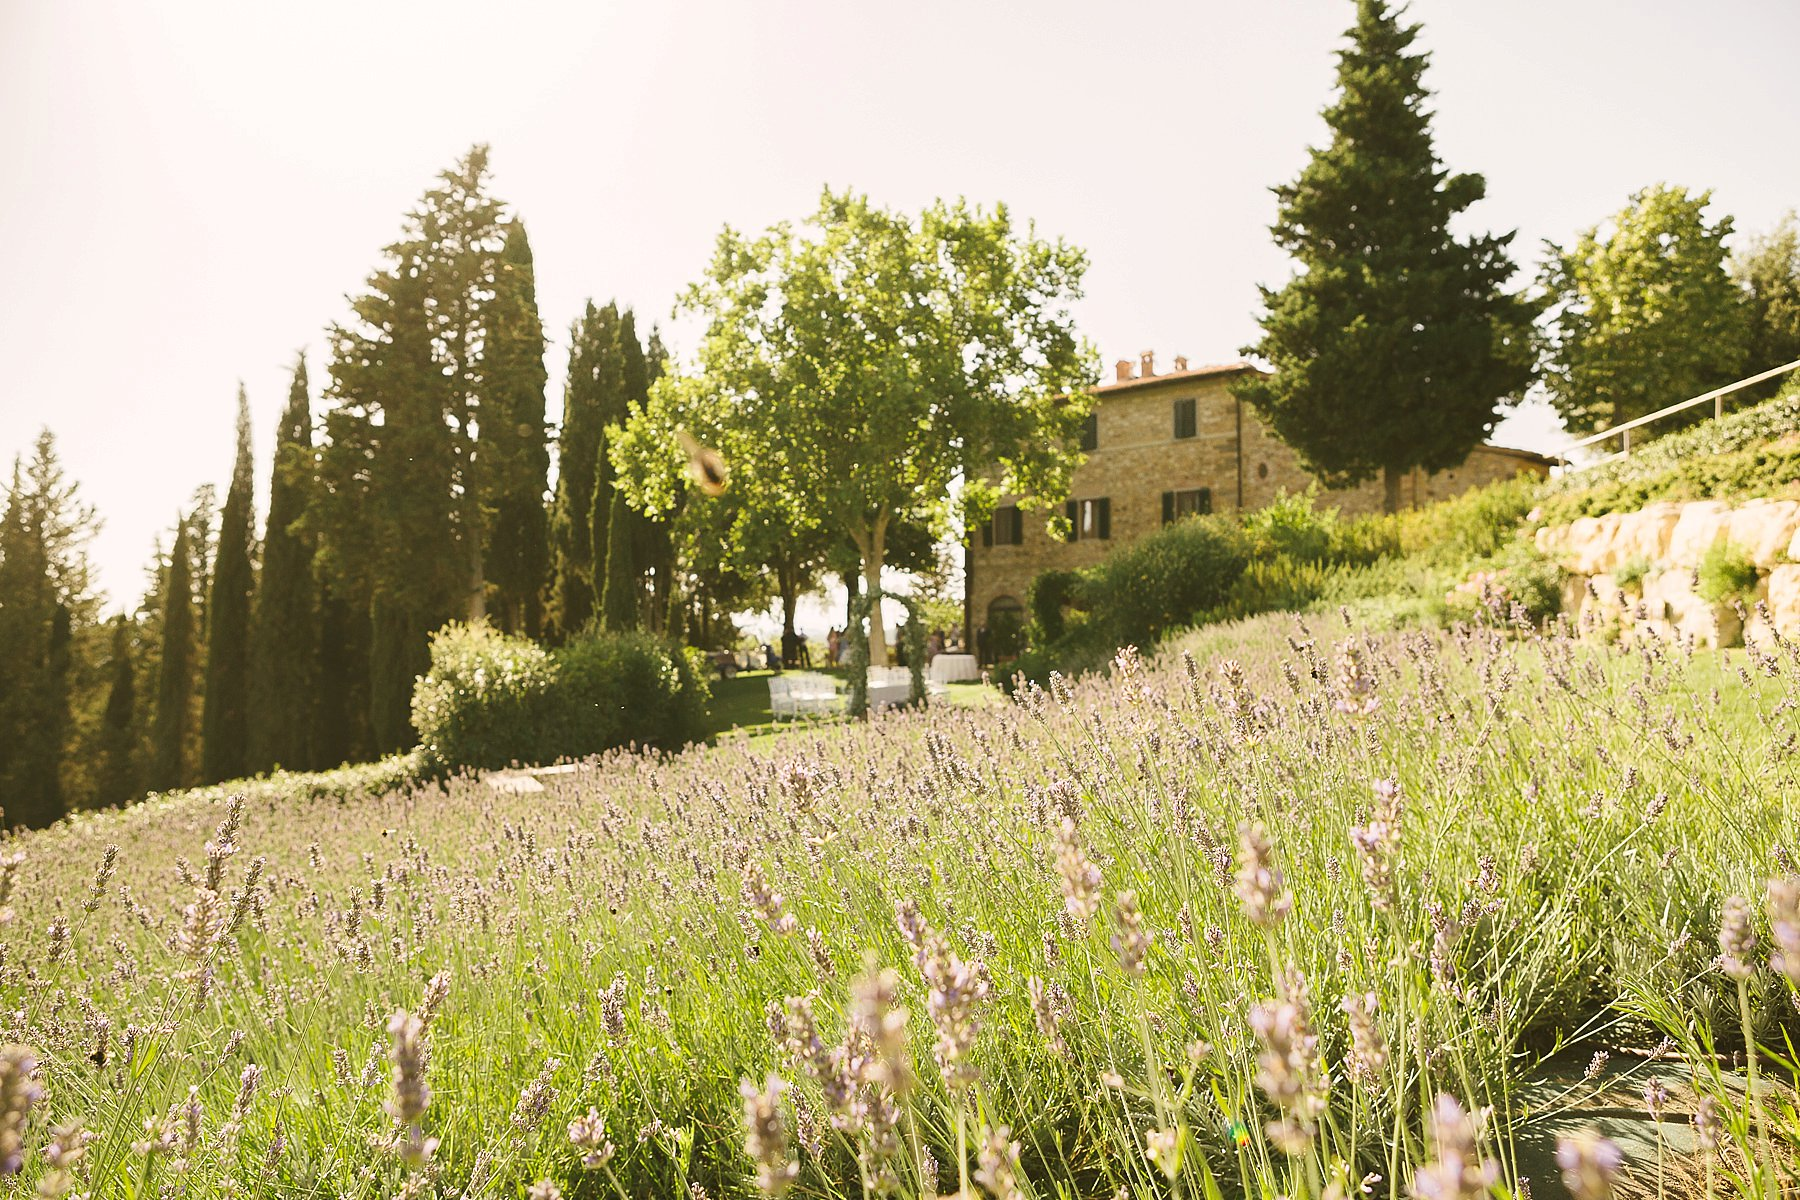 Destination wedding in Tuscany countryside near Panzano in Chianti